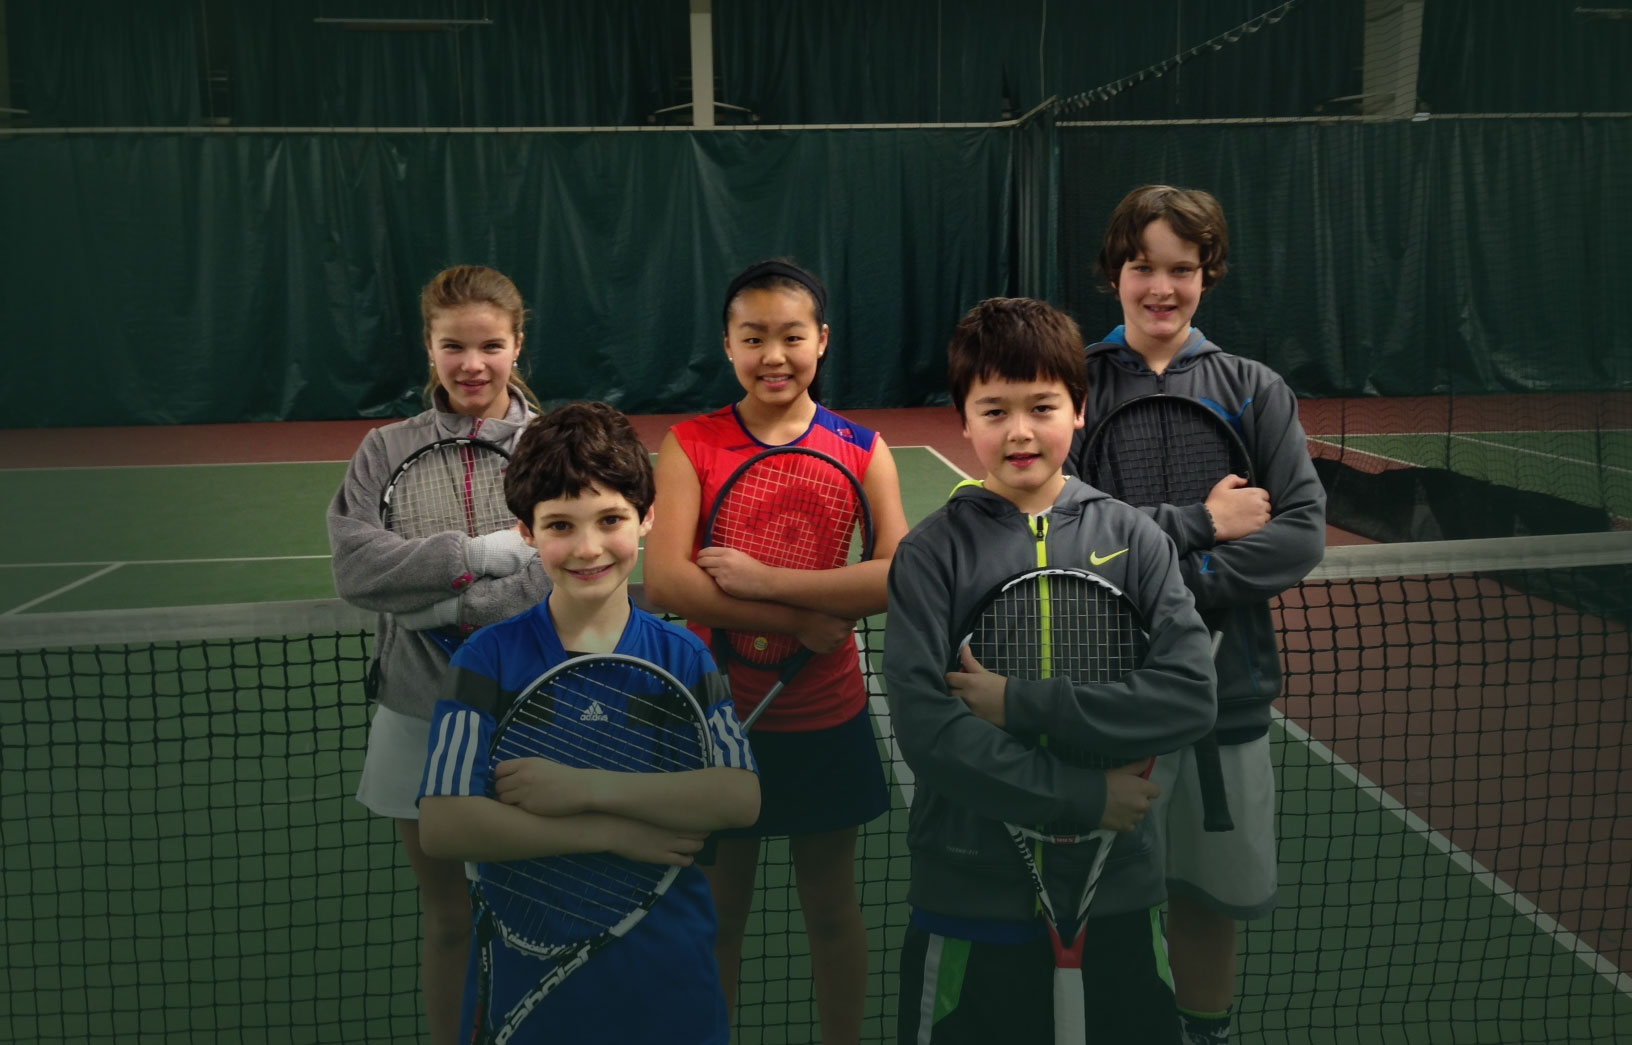 Learn about the USTA JTT Teams at TCSP